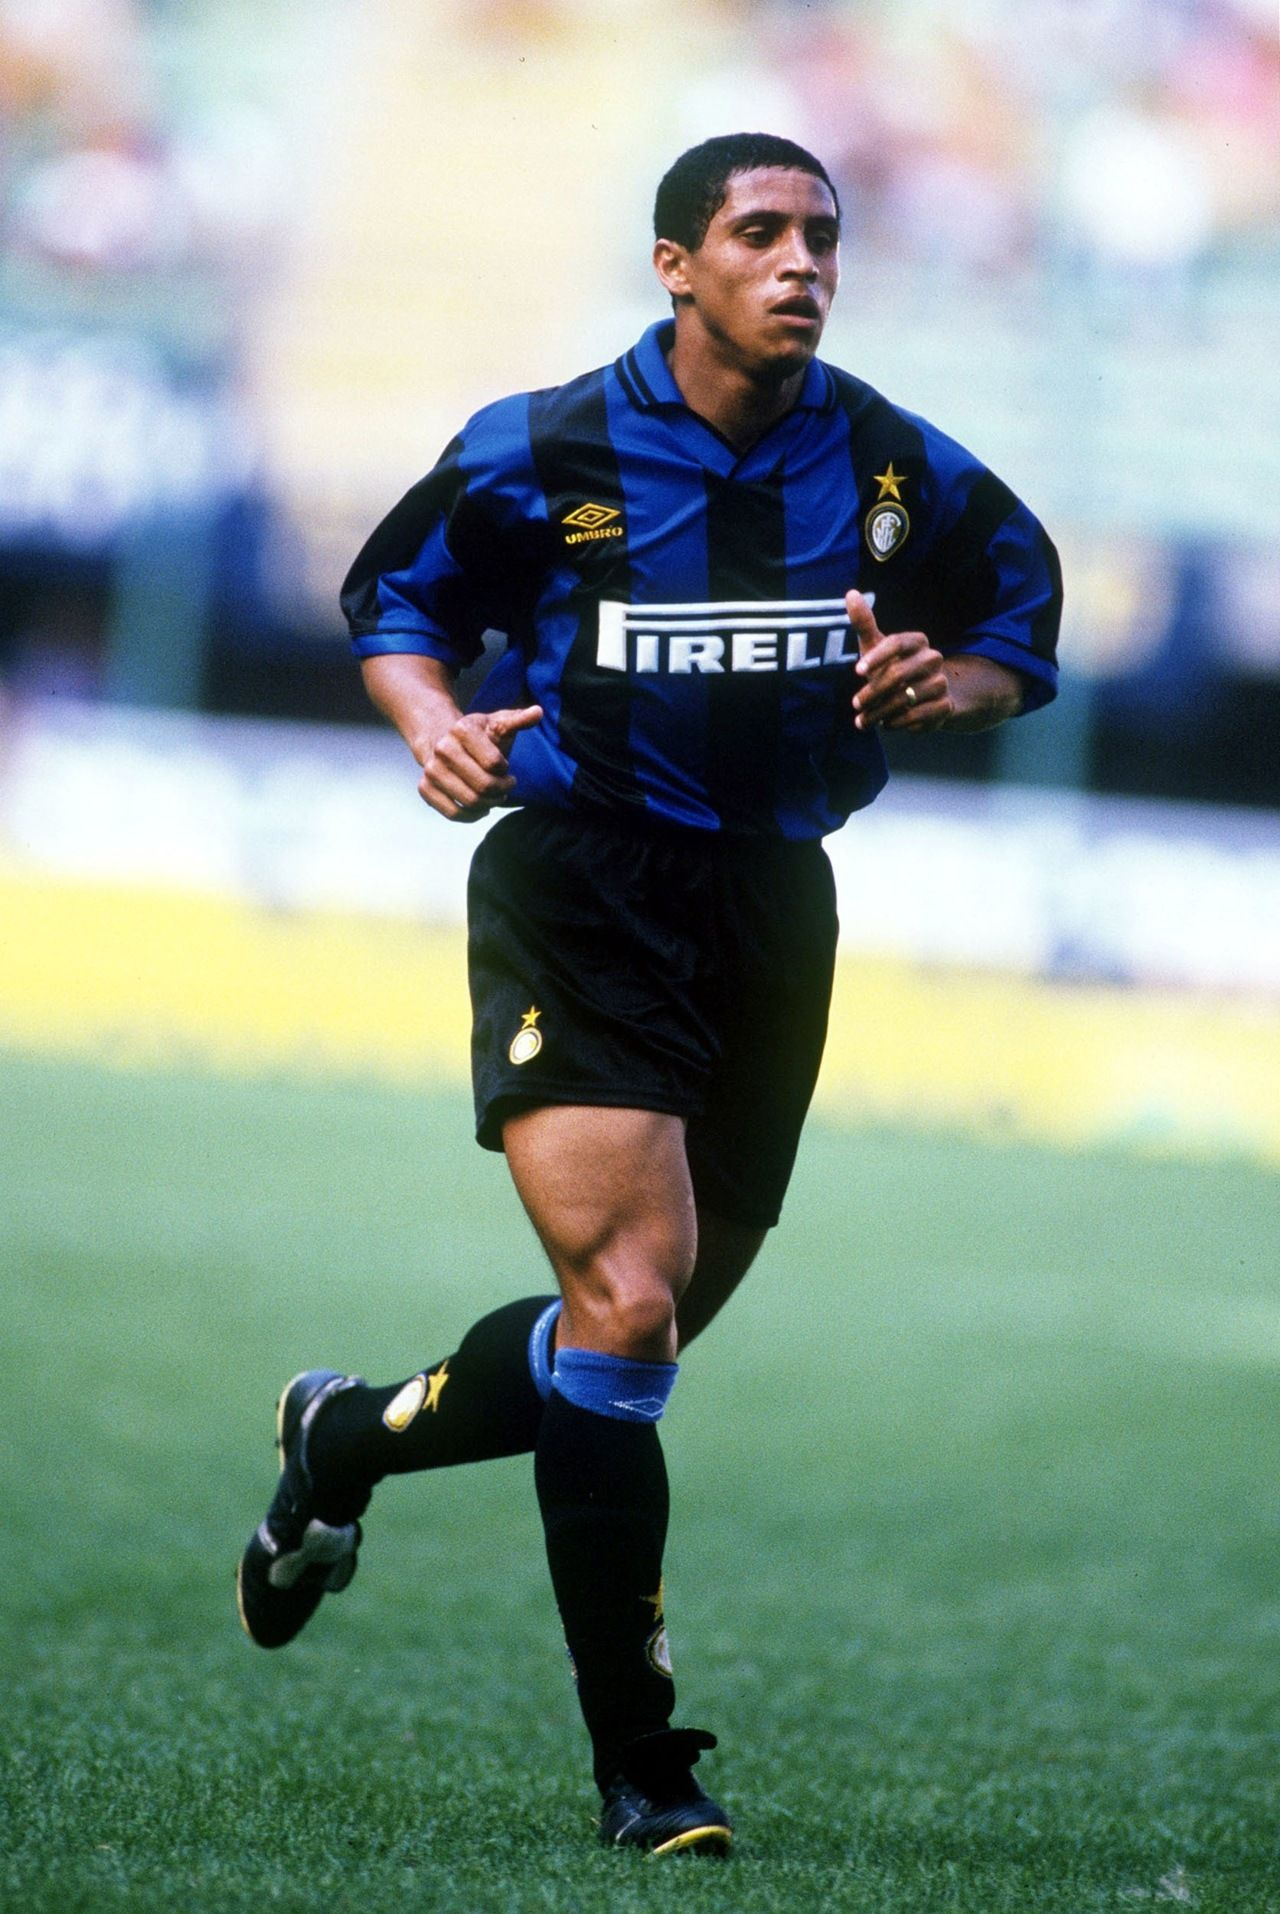 ~ Roberto Carlos on Internazionale Milano Inter Milan ~